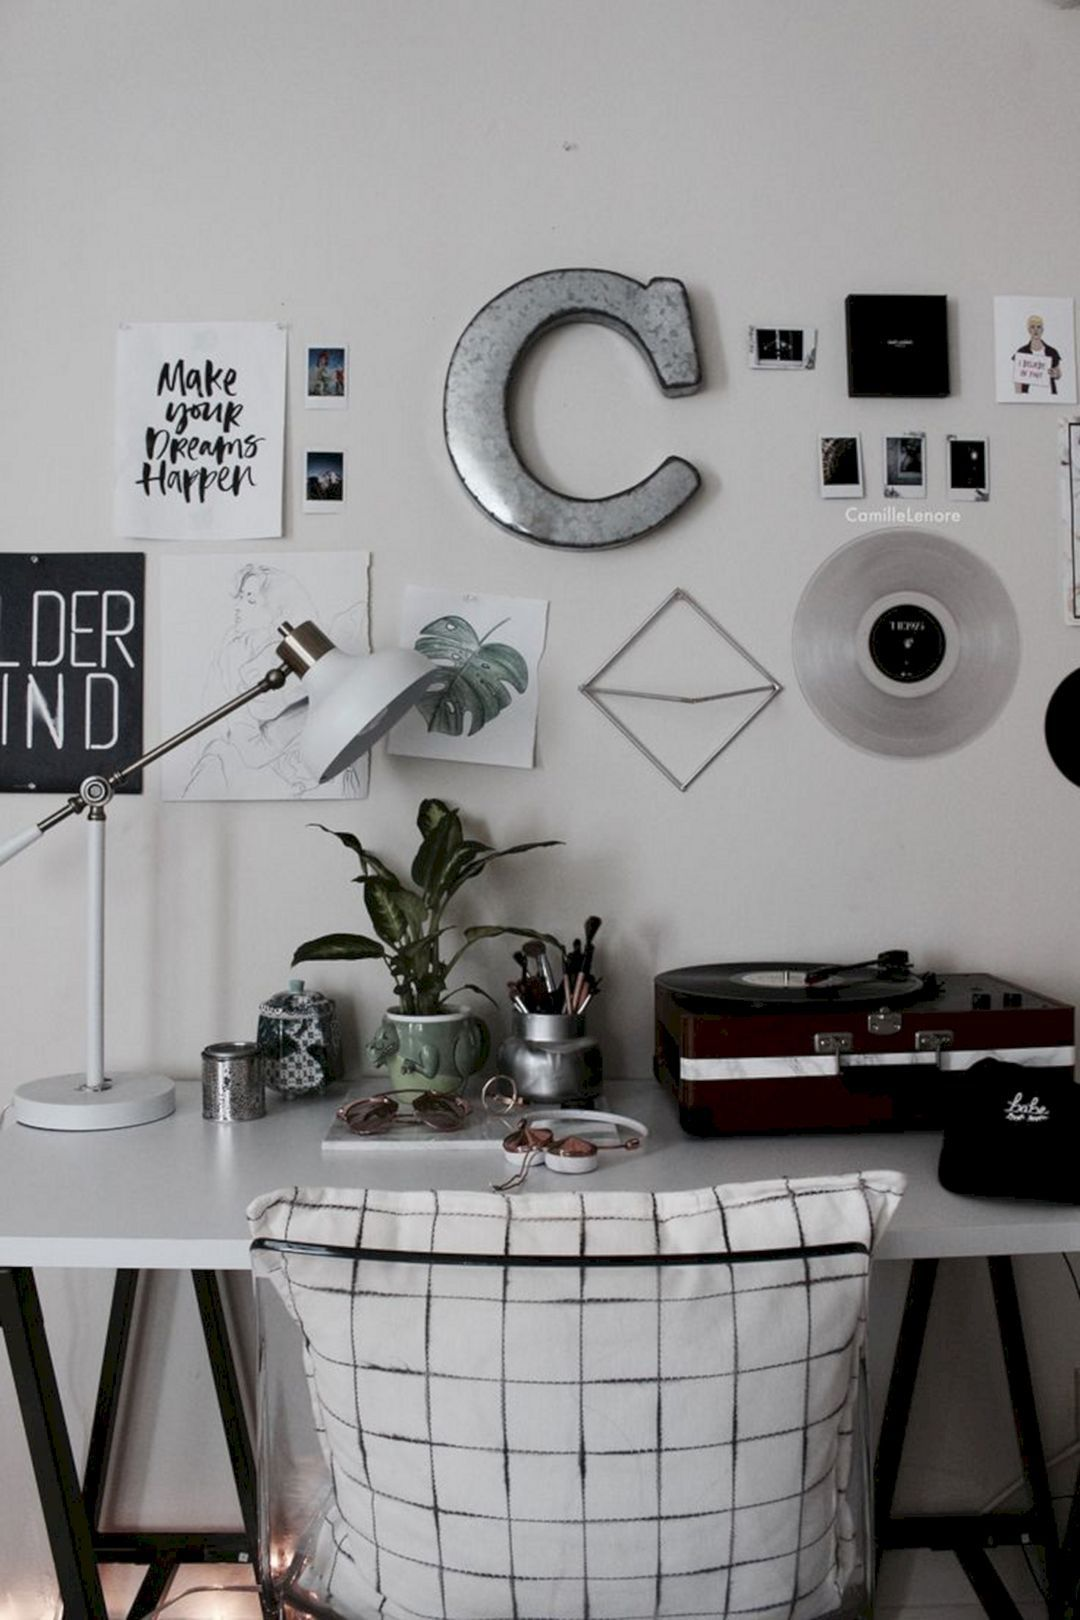 Tumblr Rooms Ideas Black And White Aesthetic Tumblr Rooms Ideas Black And White Aesthetic Design Ideas And Photos White Room Decor Minimalist Room Dorm Room Desk